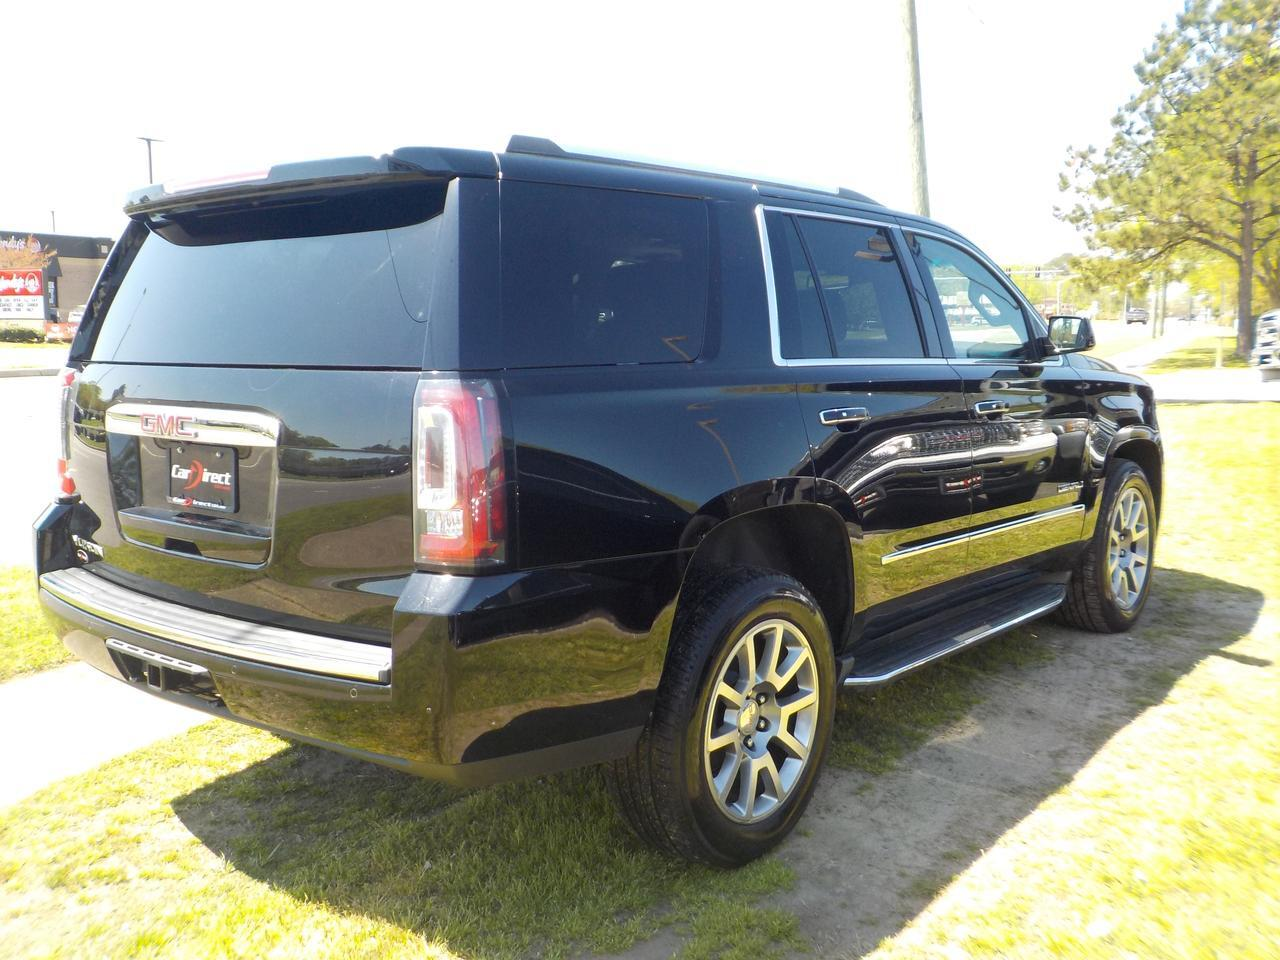 2015 GMC YUKON DENALI 4X4, WARRANTY, LOADED, TOW, DVD, NAVIGATION, POWER 3RD ROW, REMOTE START, PARKING SENSORS! Virginia Beach VA